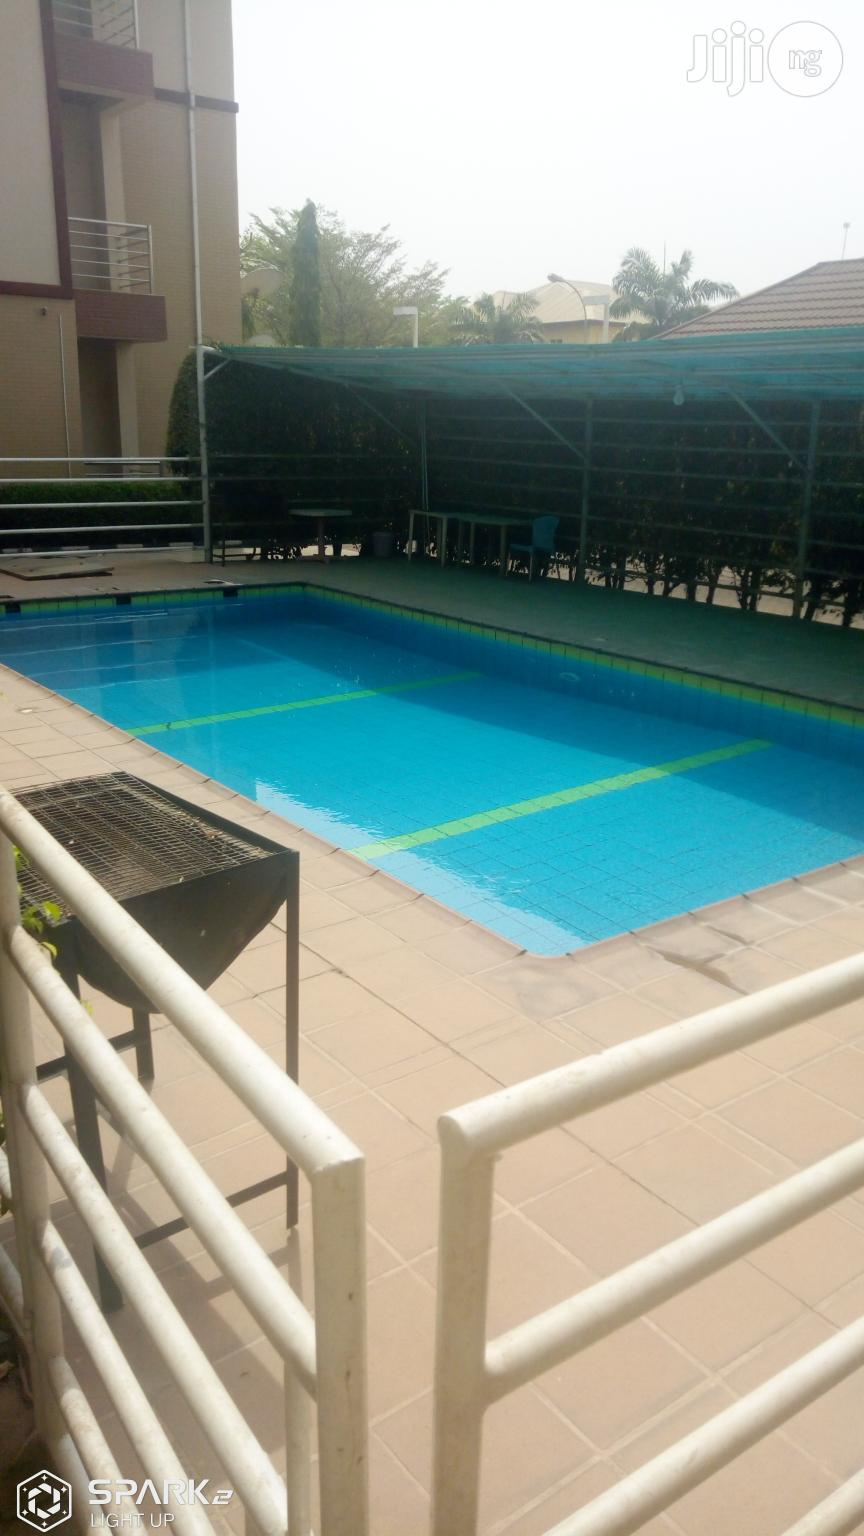 Serviced And Furnished 2bedroom Flat 24/7 Light With Swimming Pool | Houses & Apartments For Rent for sale in Jabi, Abuja (FCT) State, Nigeria